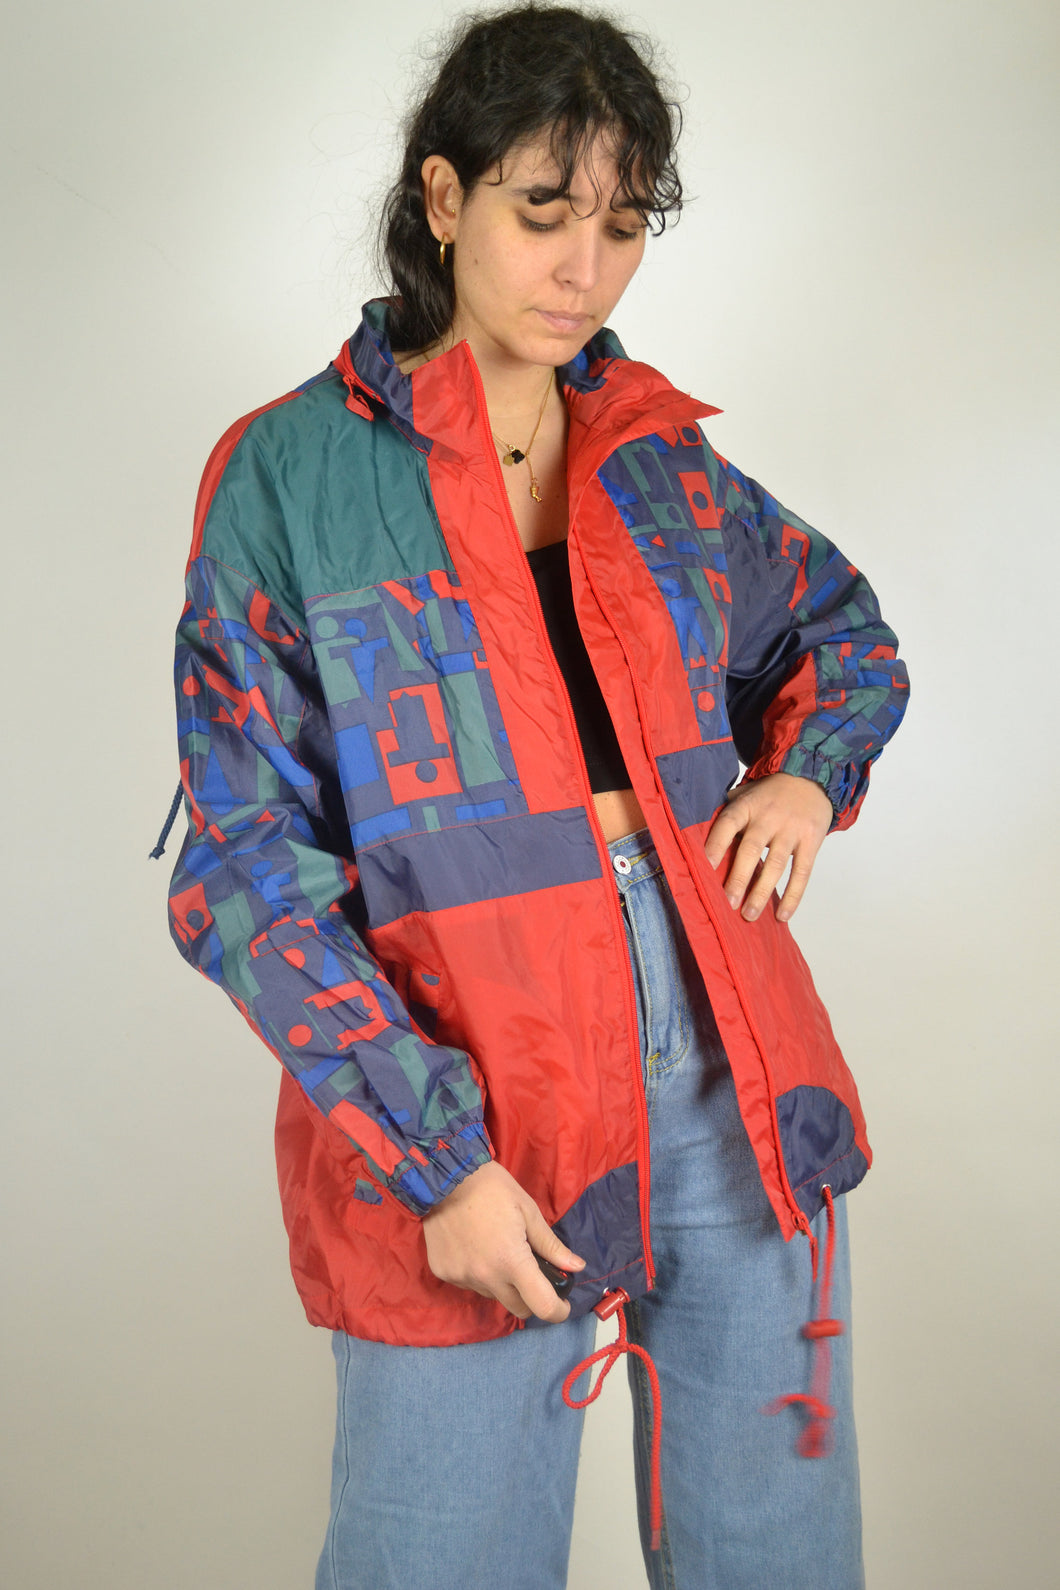 90s Neon Windbreaker Vintage 80s Retro Orange Red Anorak jacket Sport Tracksuit Oldschool Zipped Rain Jacket Men Women L